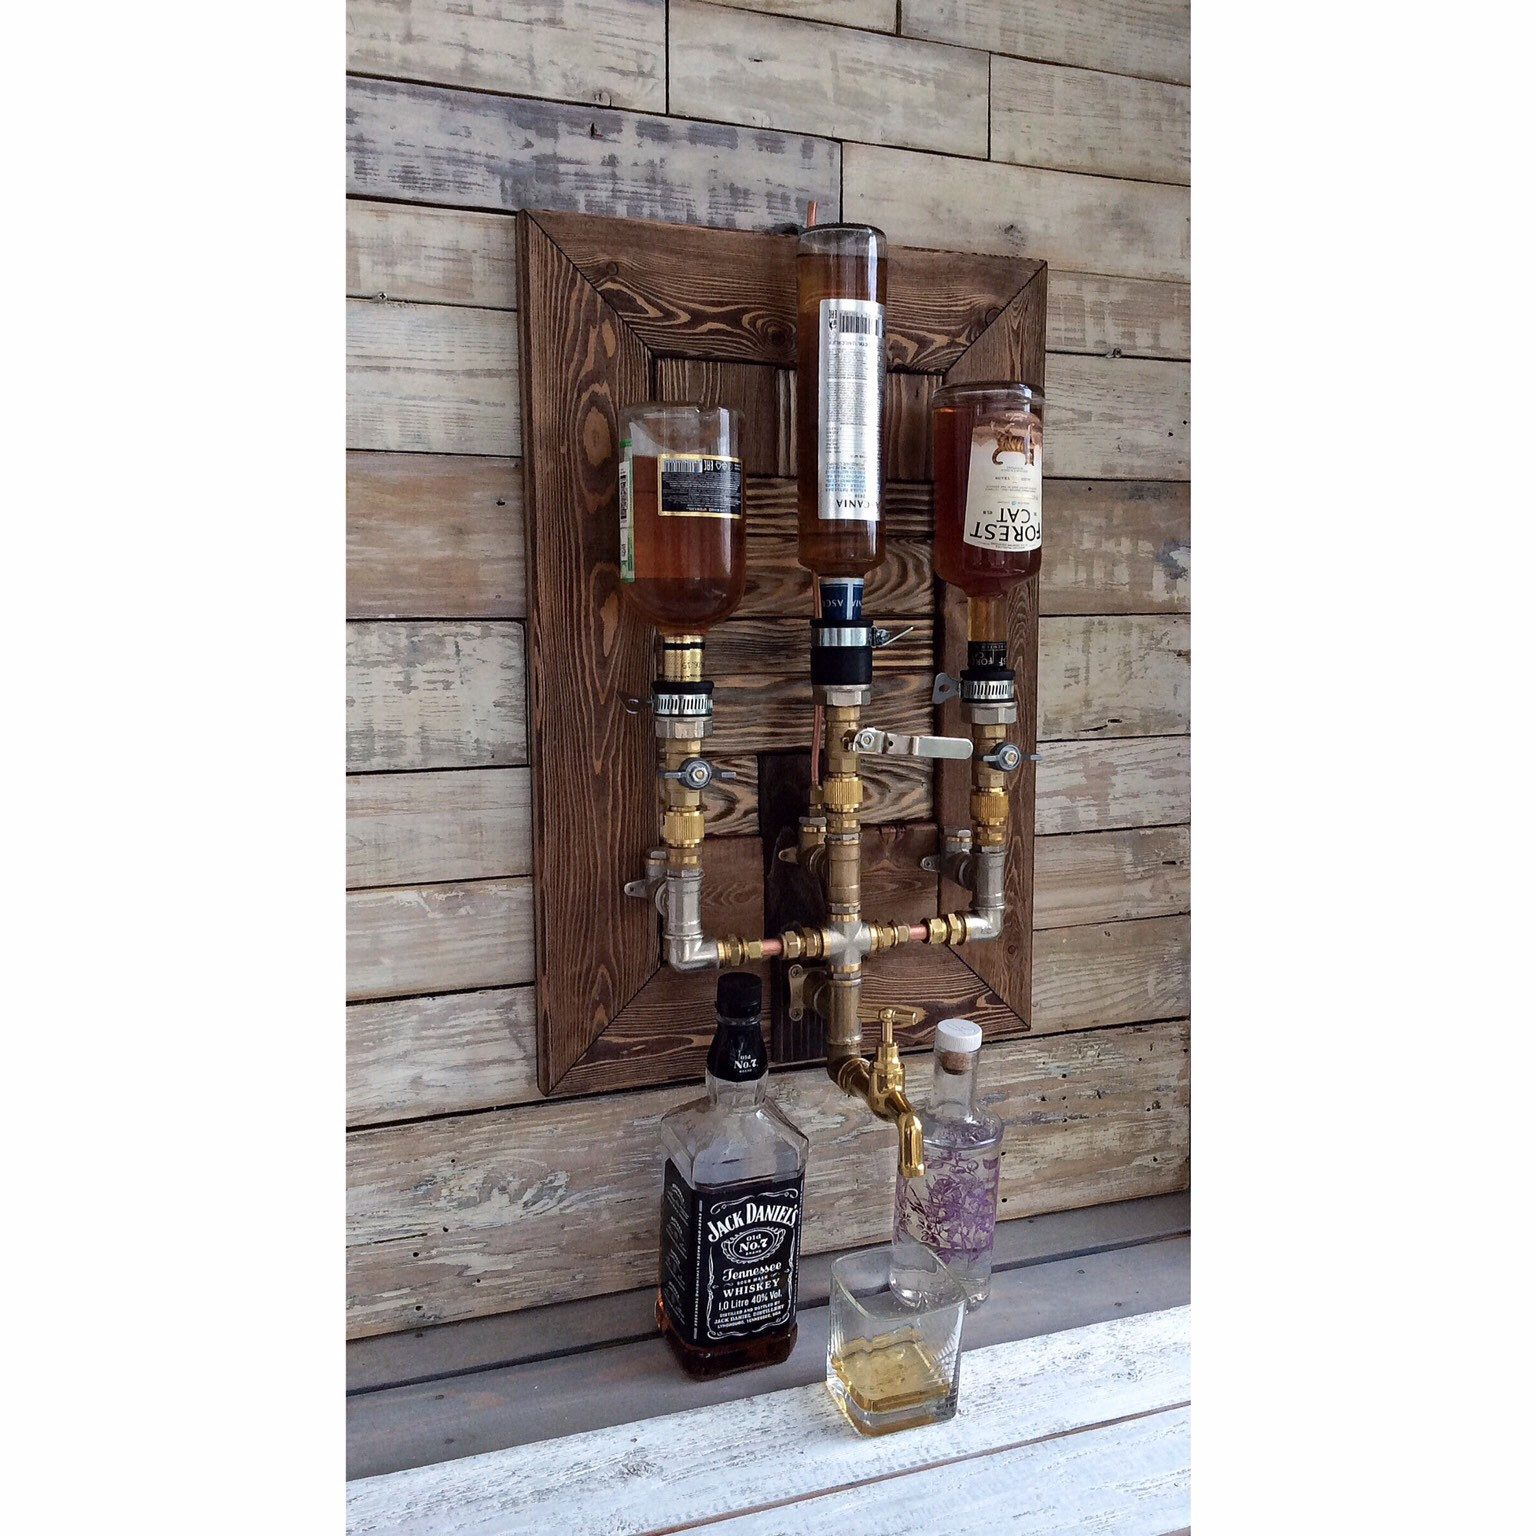 Photo of Alkohol Alkohol Whisky Holz & Messing Spender, Whisky Spender, Whisky Dekanter, Spender, Jack Daniels